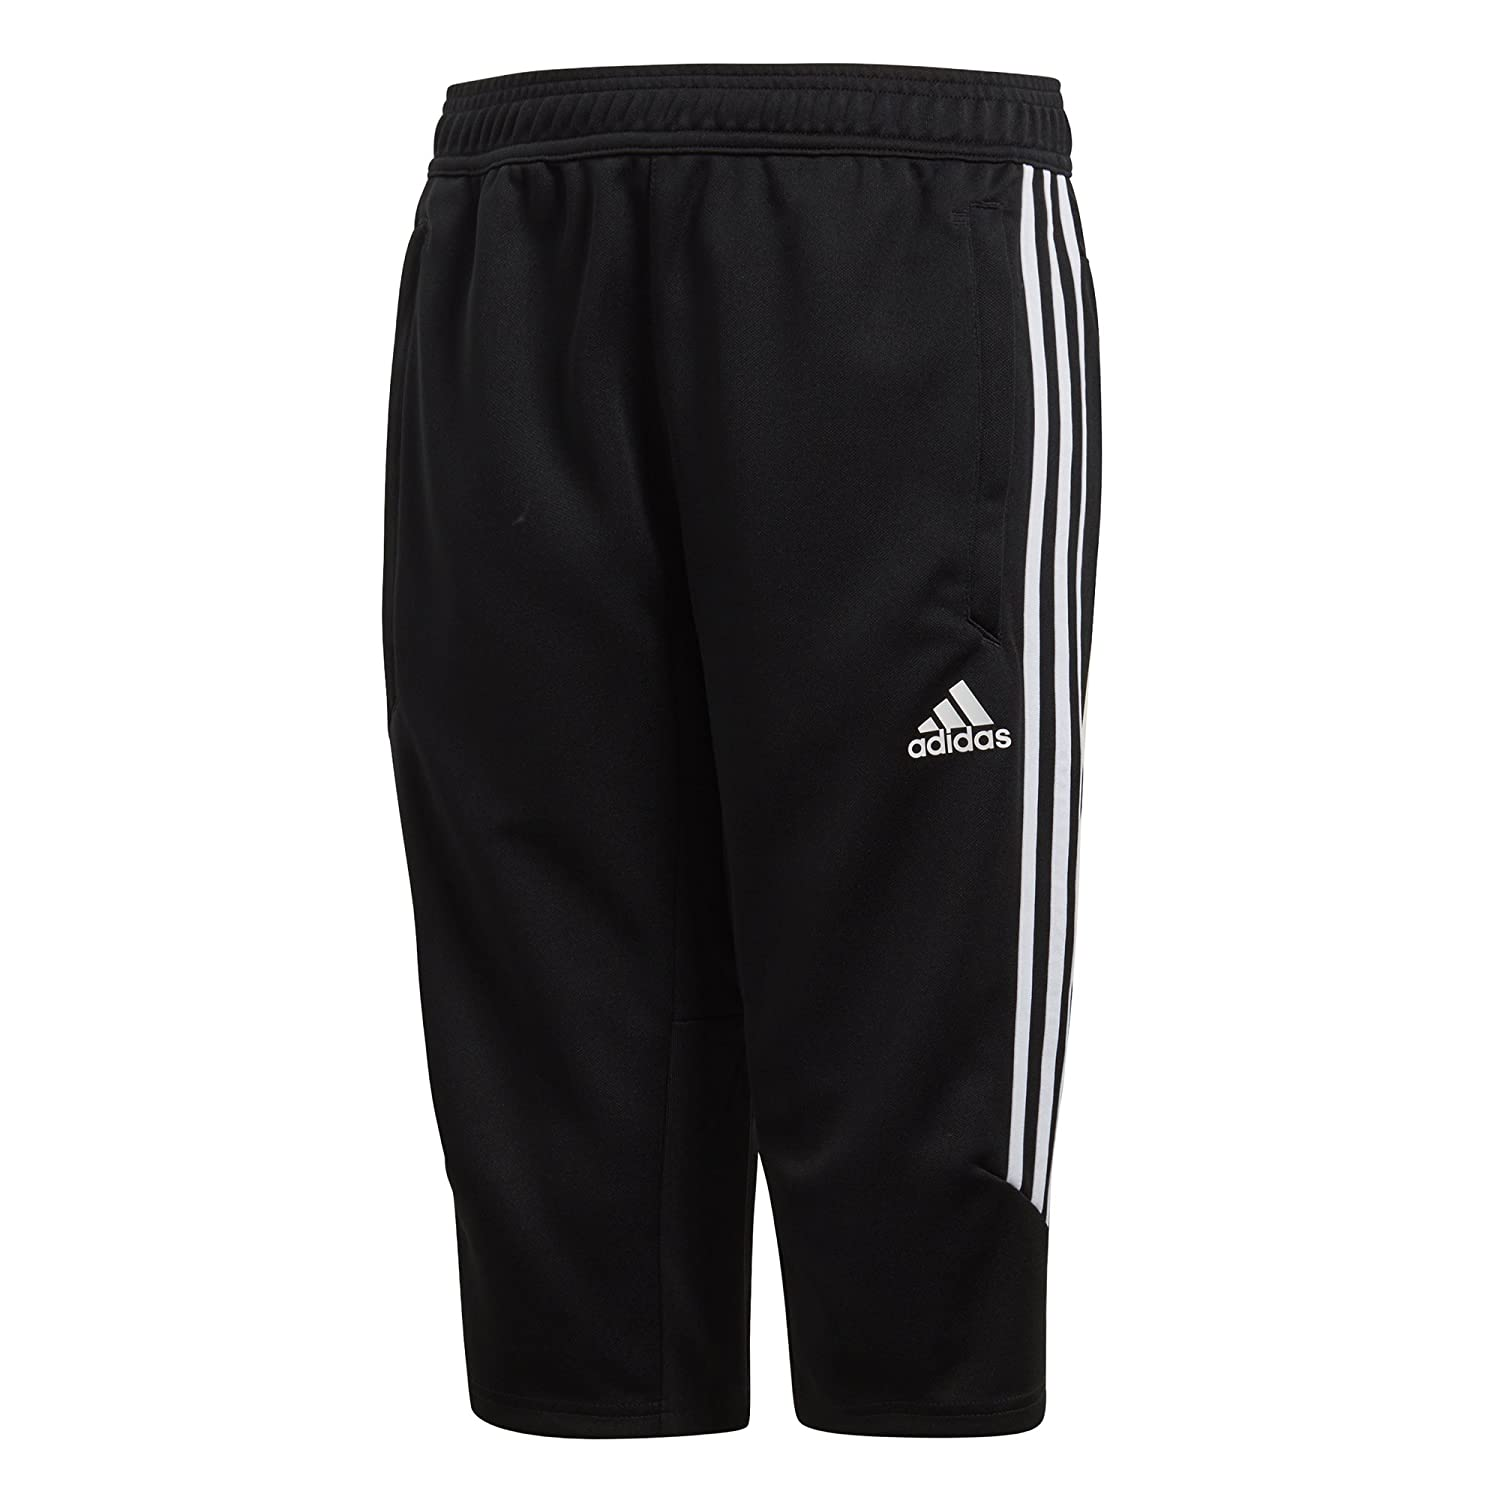 adidas Boy's Tiro17 3/4 Pants BS3707-PARENT